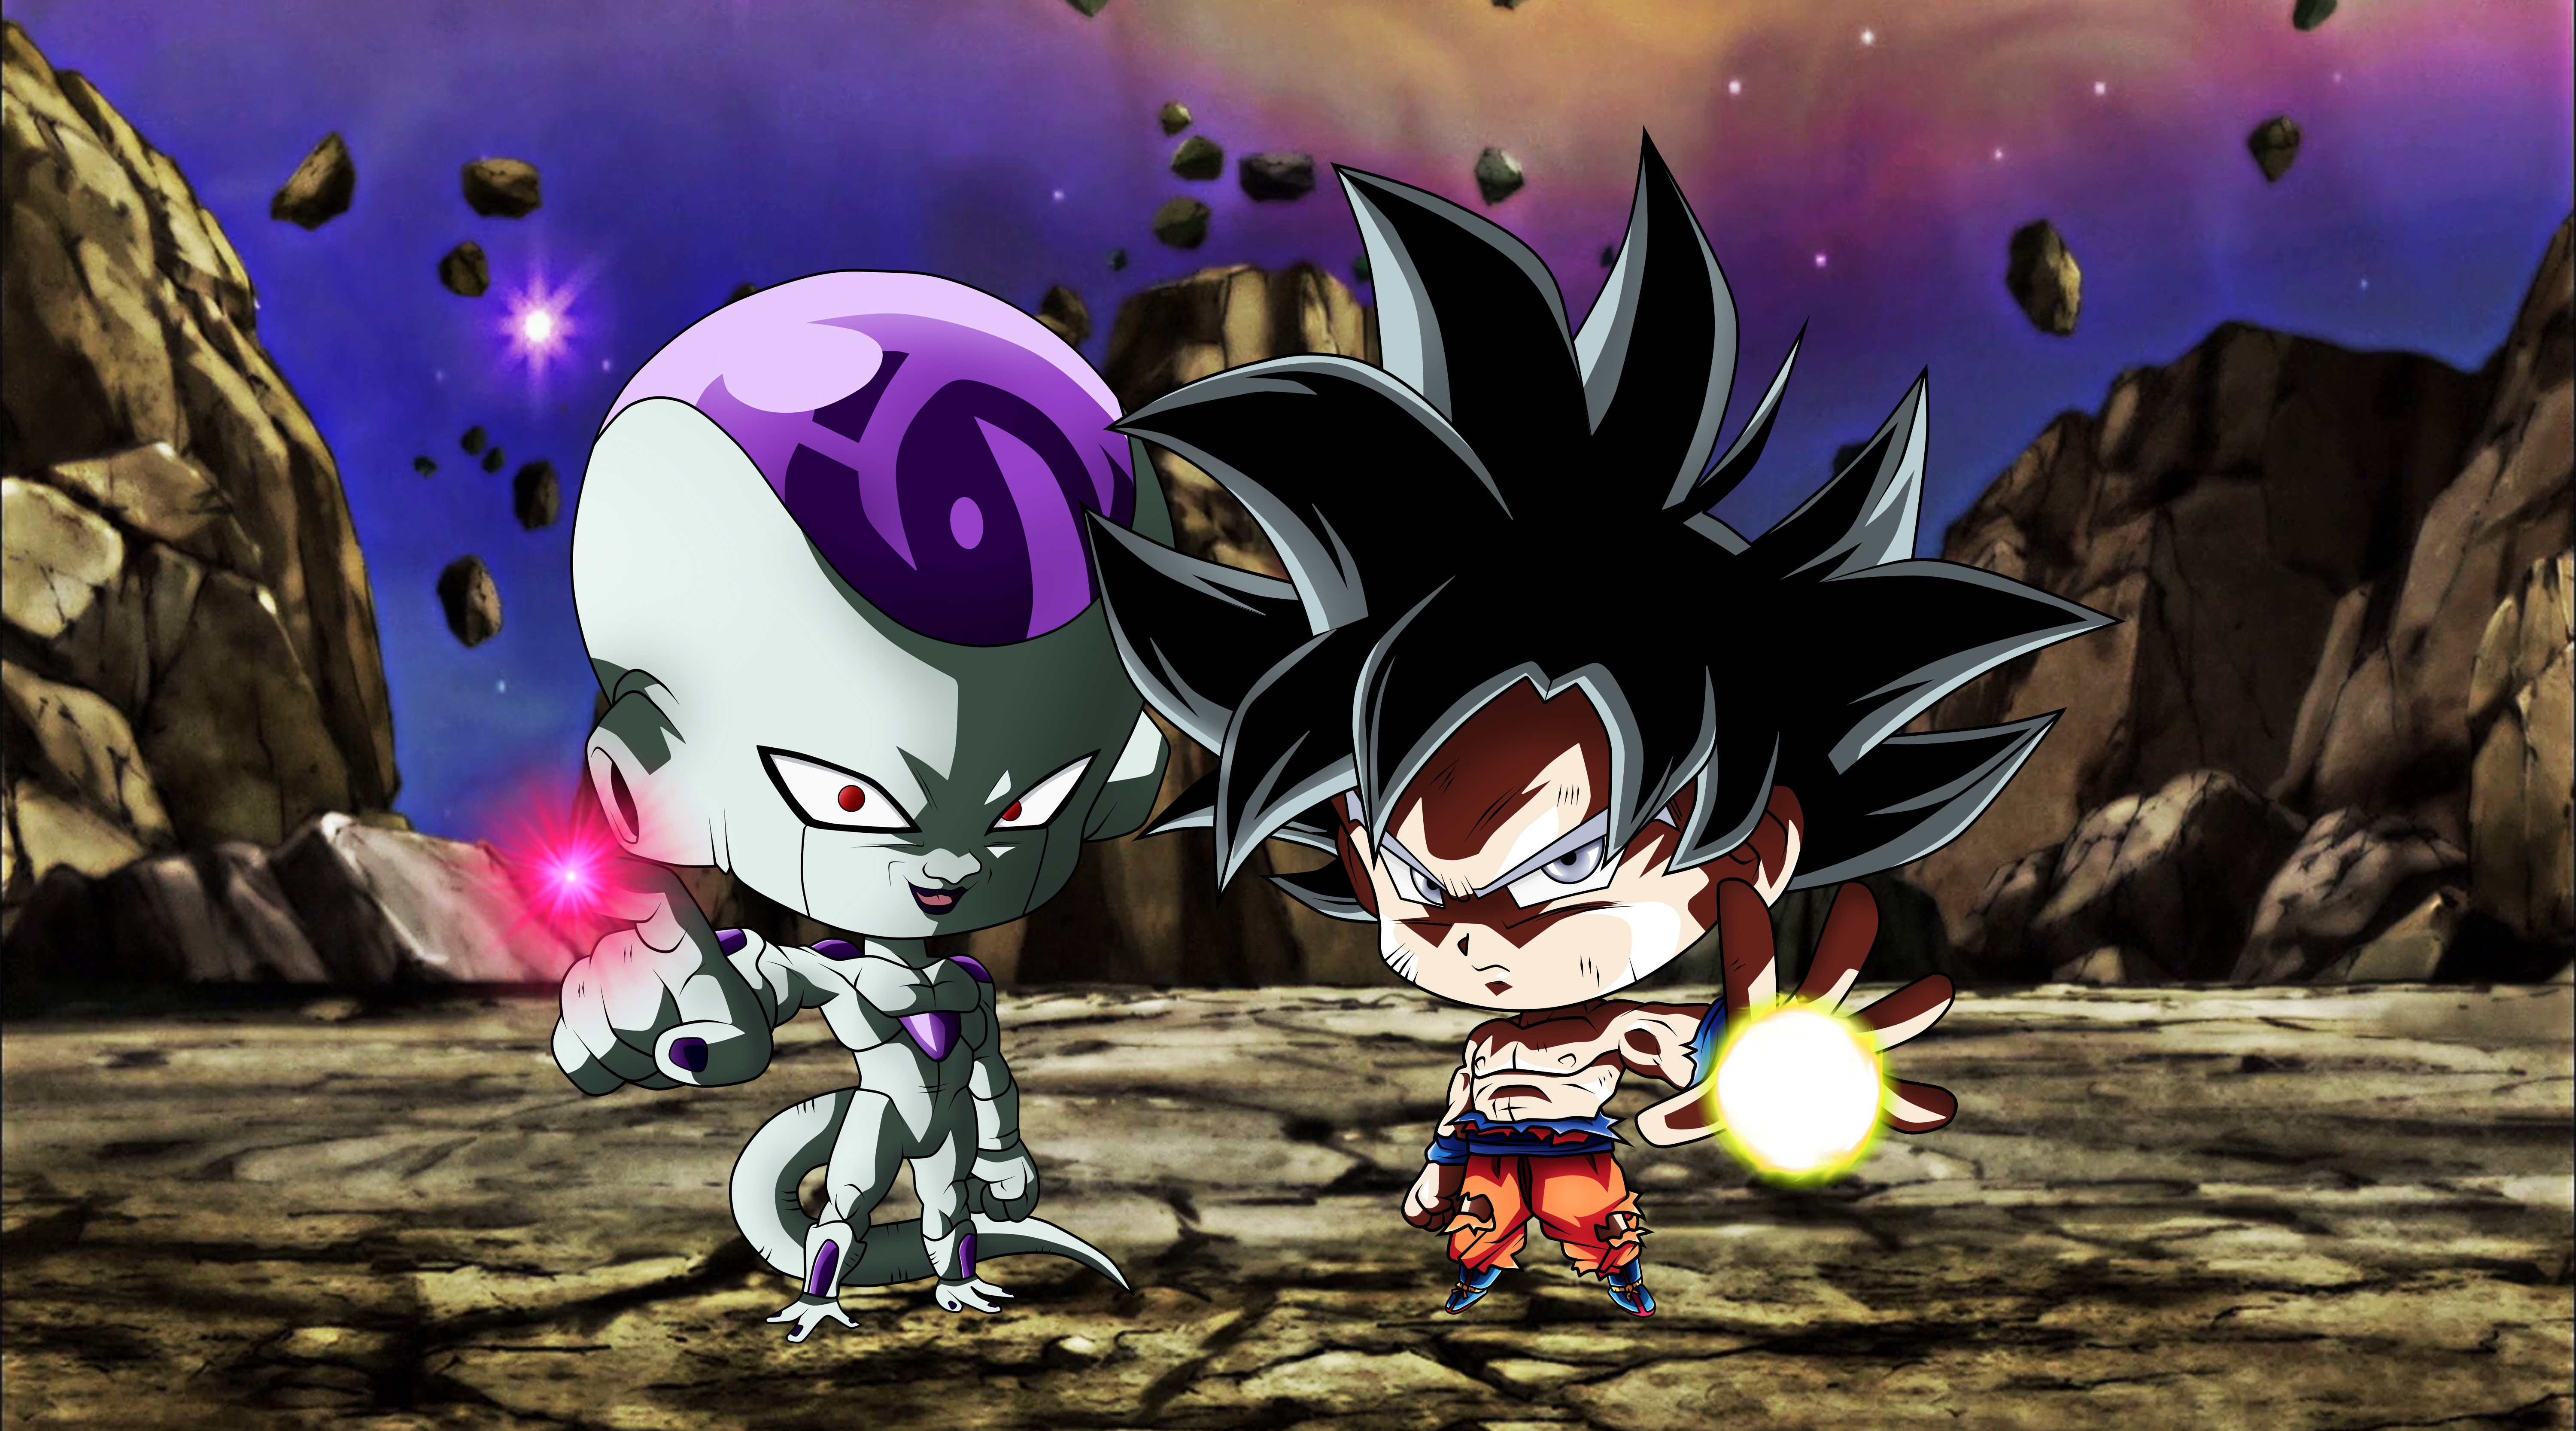 Chibi Frieza Goku Ultra Instinct Dragon Ball Hd Anime 4k Wallpapers Images Backgrounds Photos And Pictures